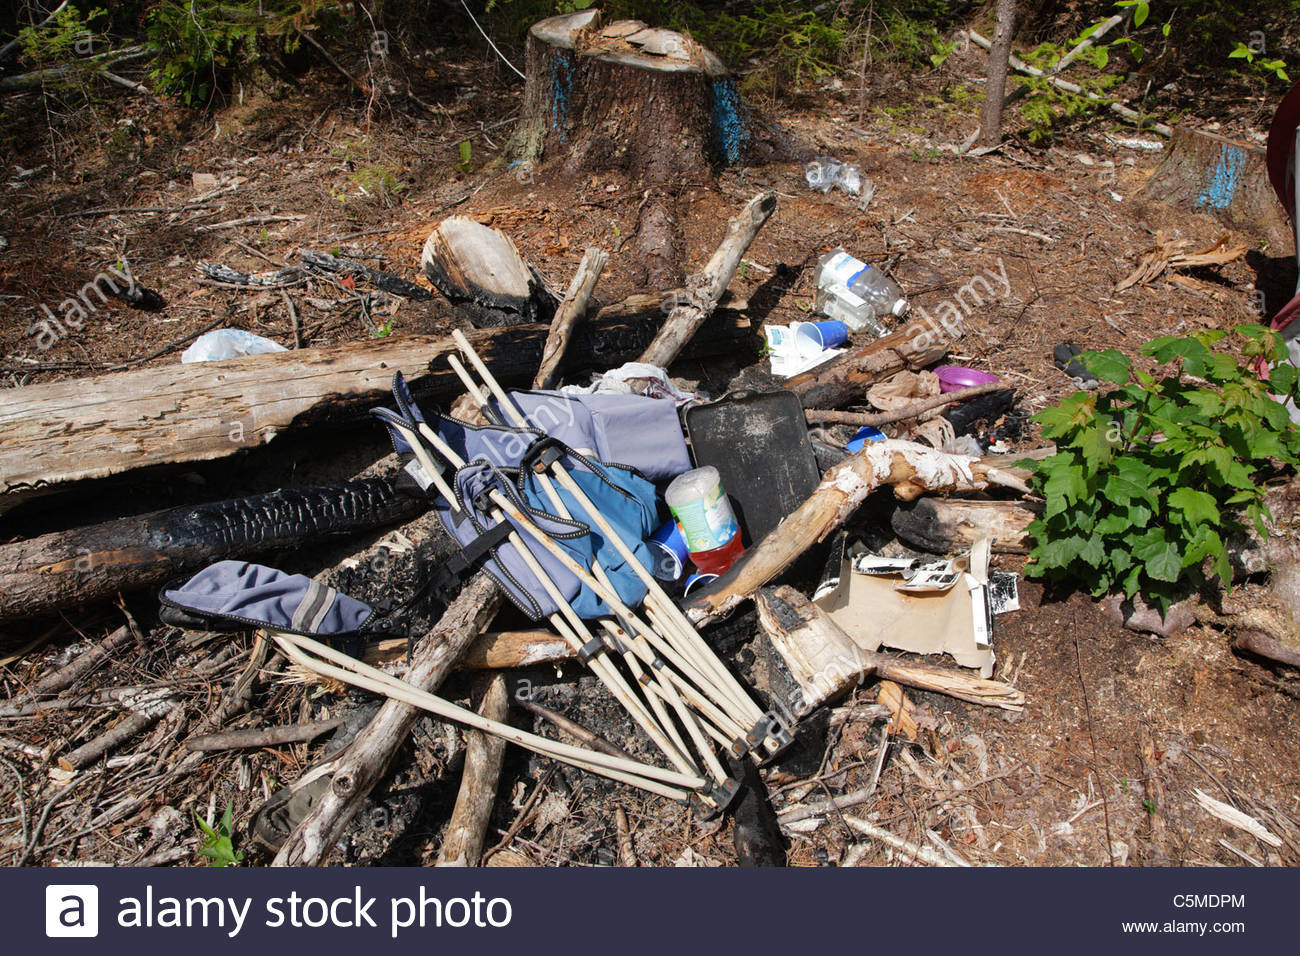 Poor leave no trace ethics - Abandoned campsite in the White Mountain National Forest of New Hampshire - Stock Image